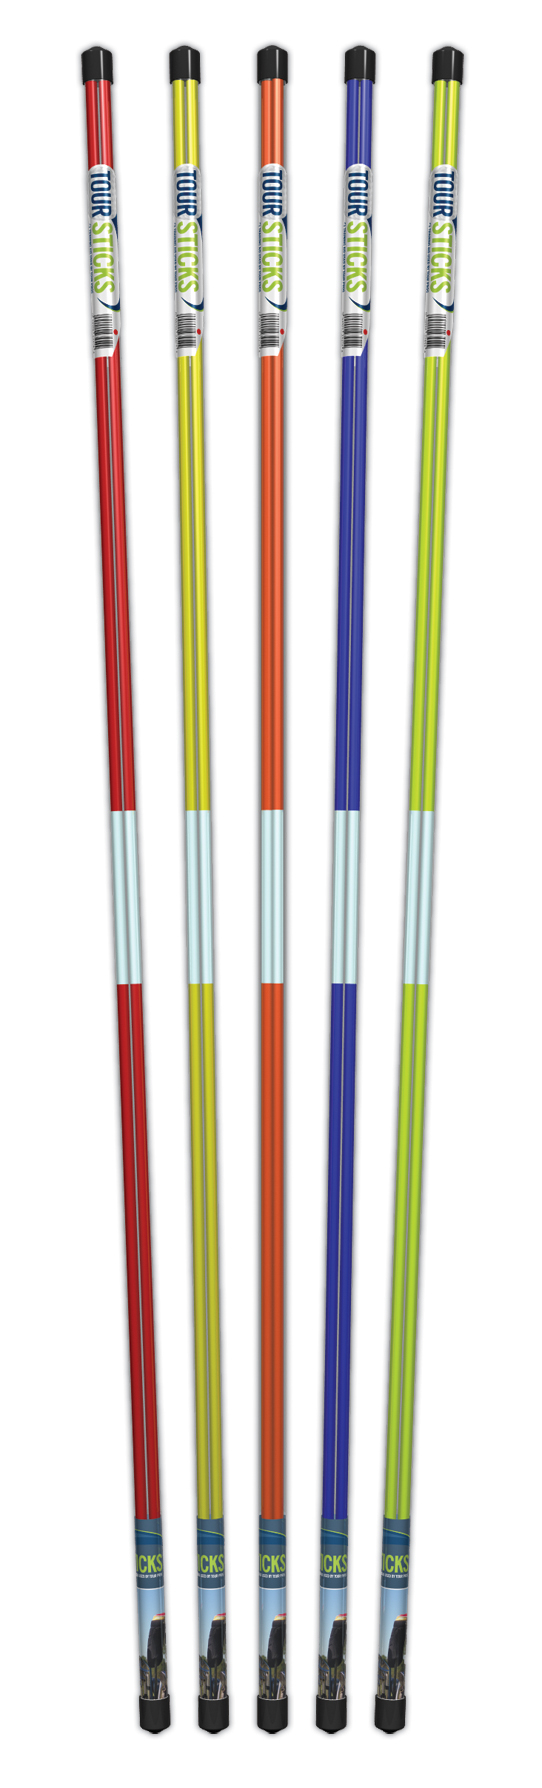 Tour Sticks sells alignment aids in pairs, available in several colors, in a clear tube.